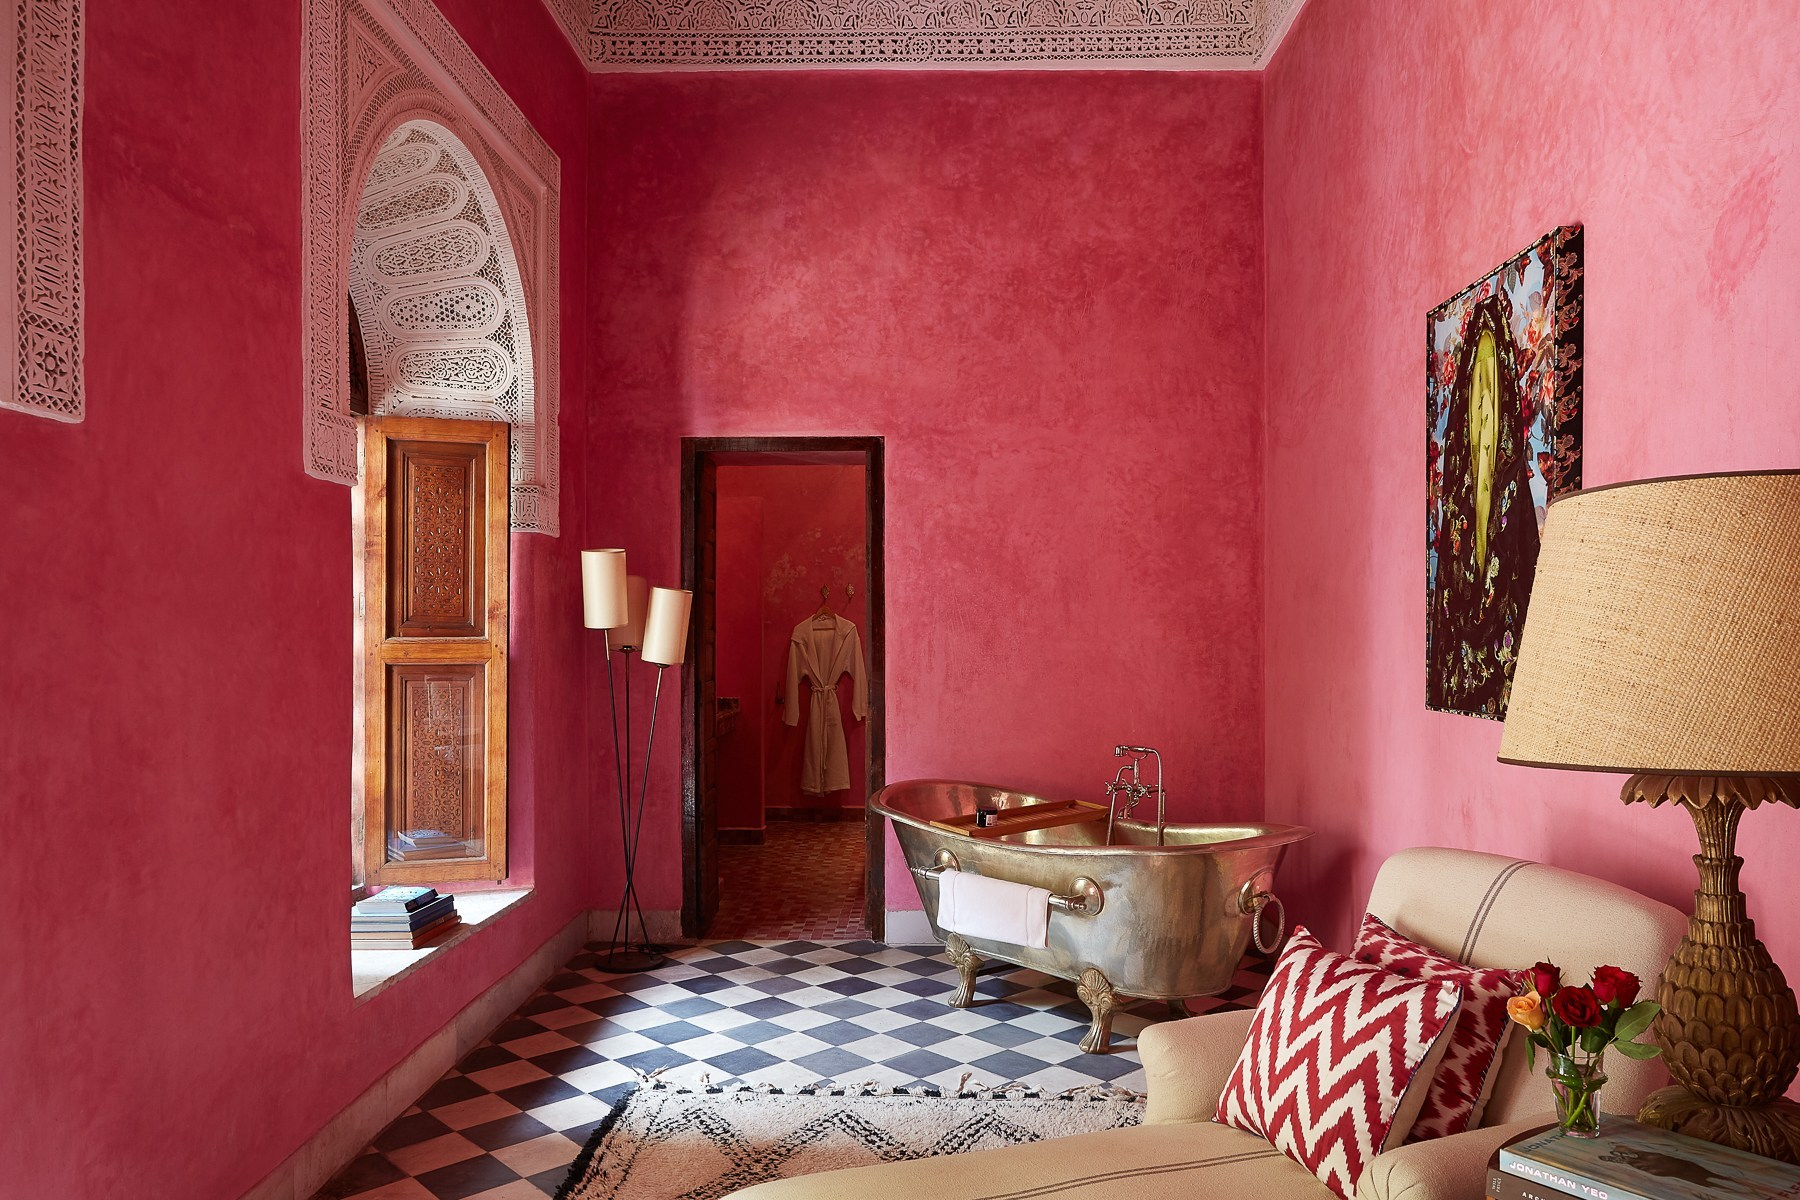 ElectrifyDesigning a Modern Moroccan Palace with El Fenn's Willem Smit -